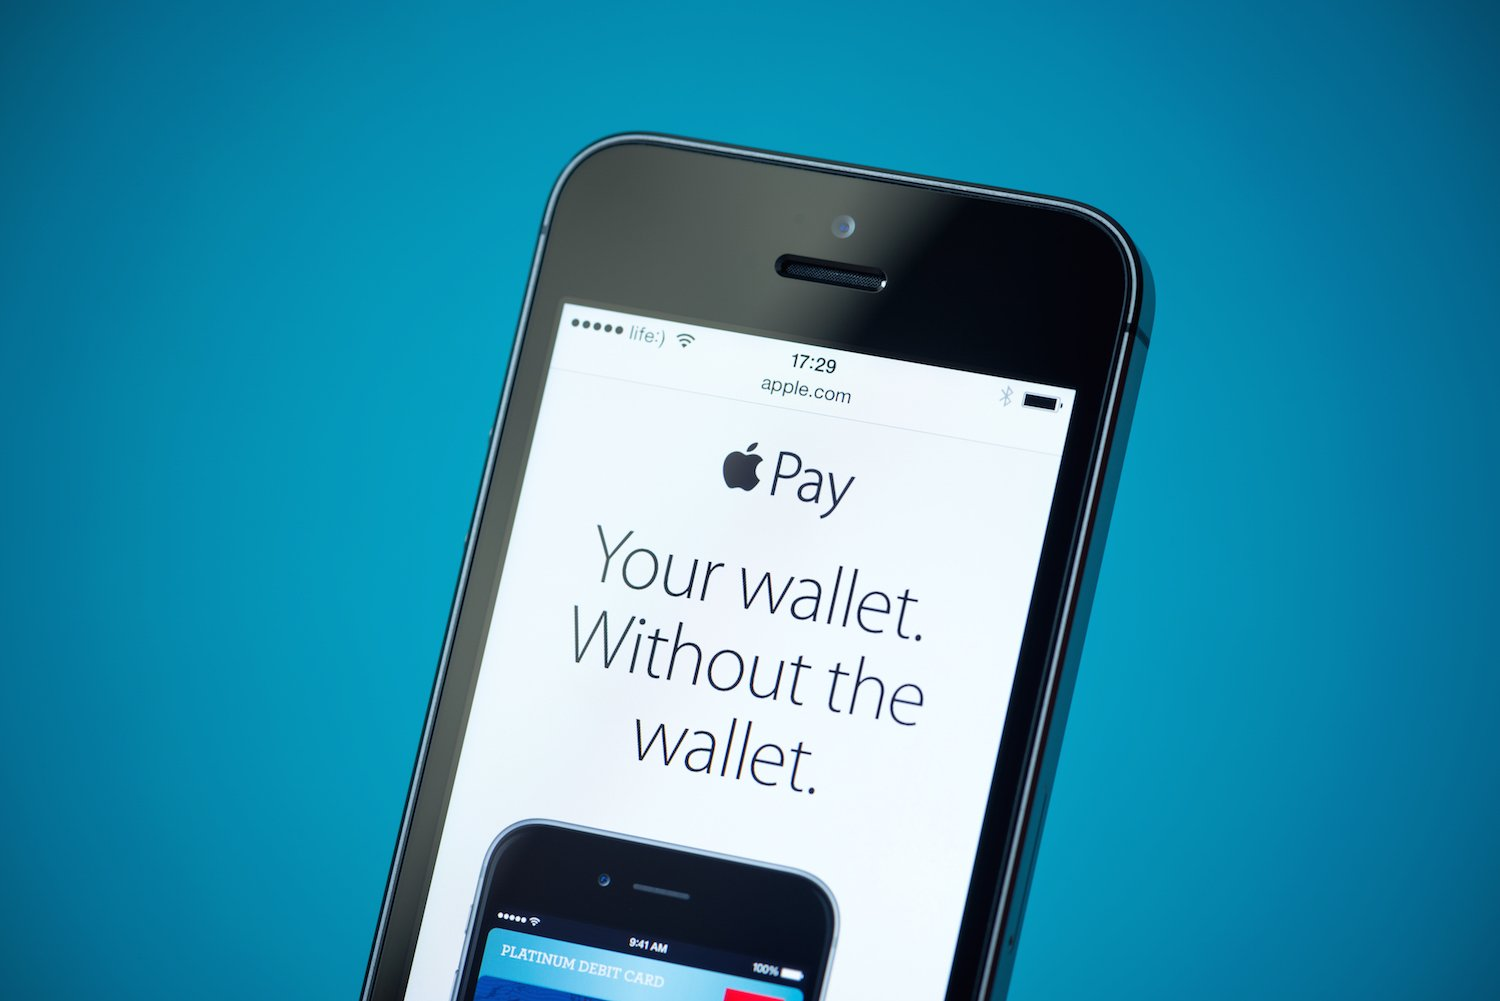 Major UK banks will limit Apple Pay transactions to £20